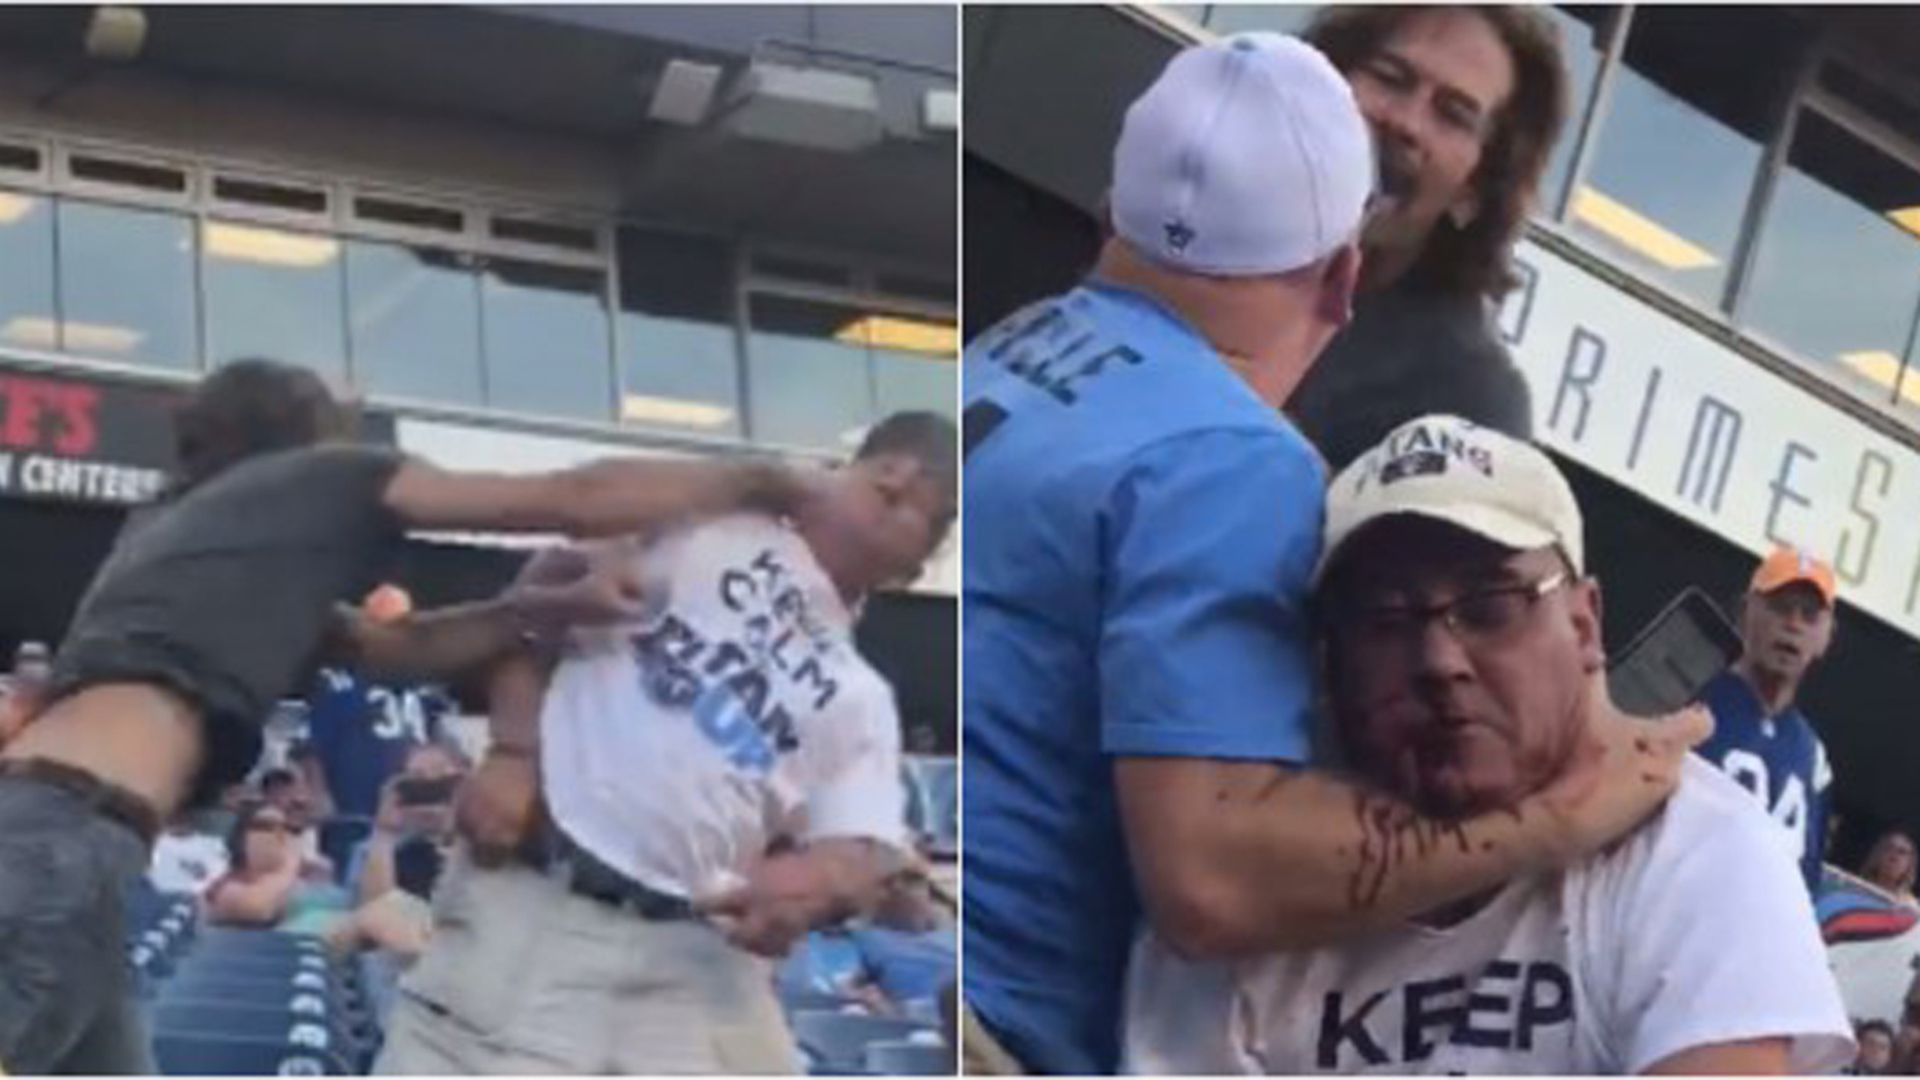 Tennessee Titans Fans Get into BLOODY Fight During Scrimmage